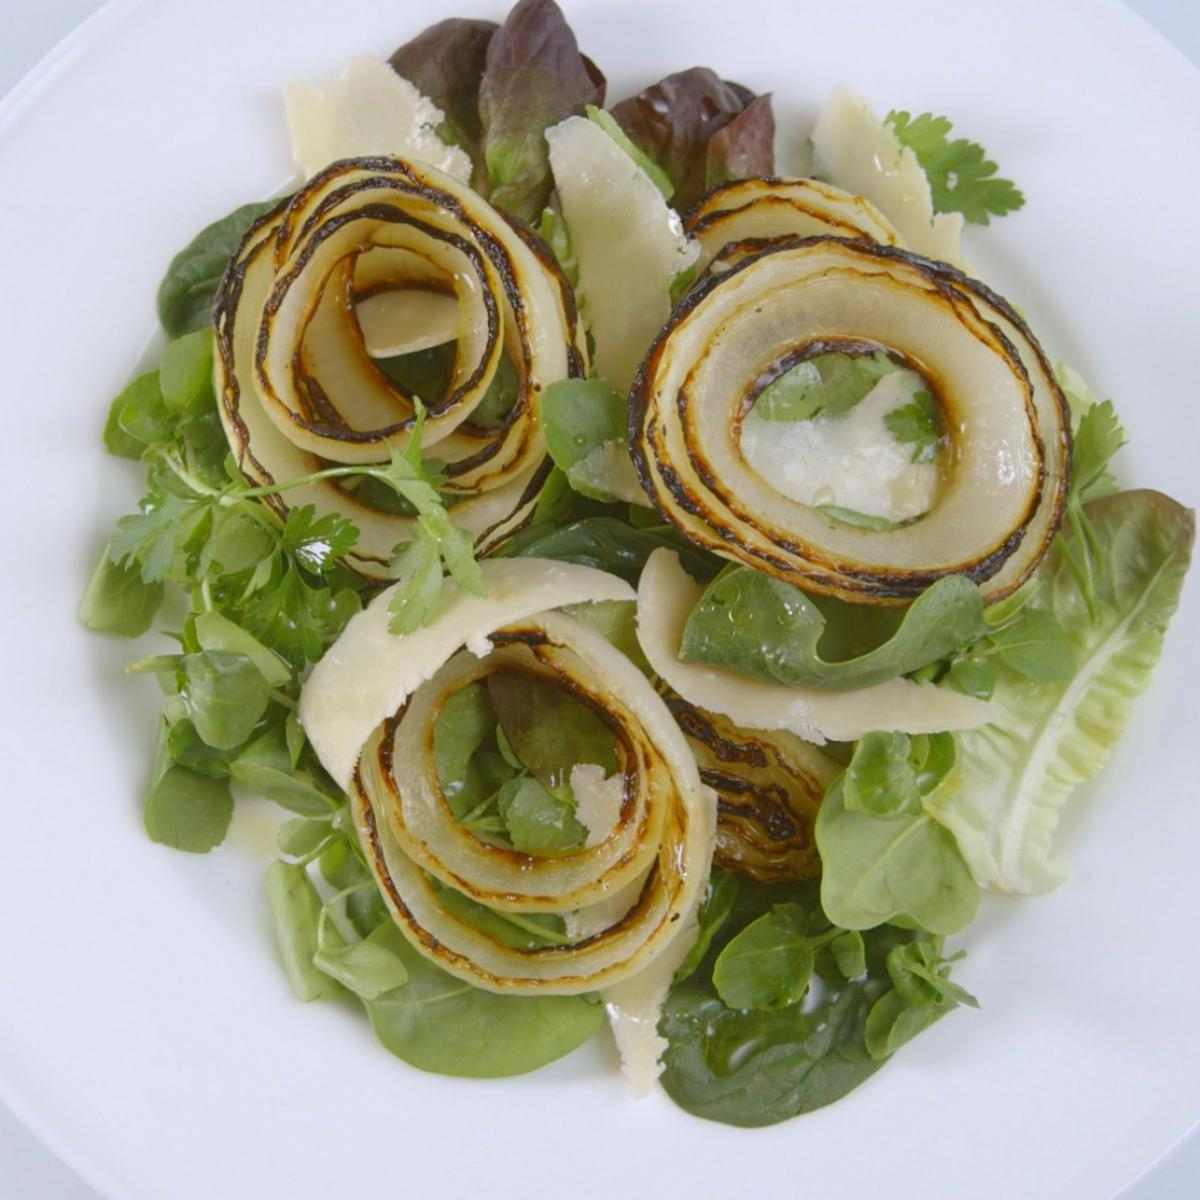 A picture of Delia's Grilled Spanish Onion Salad recipe